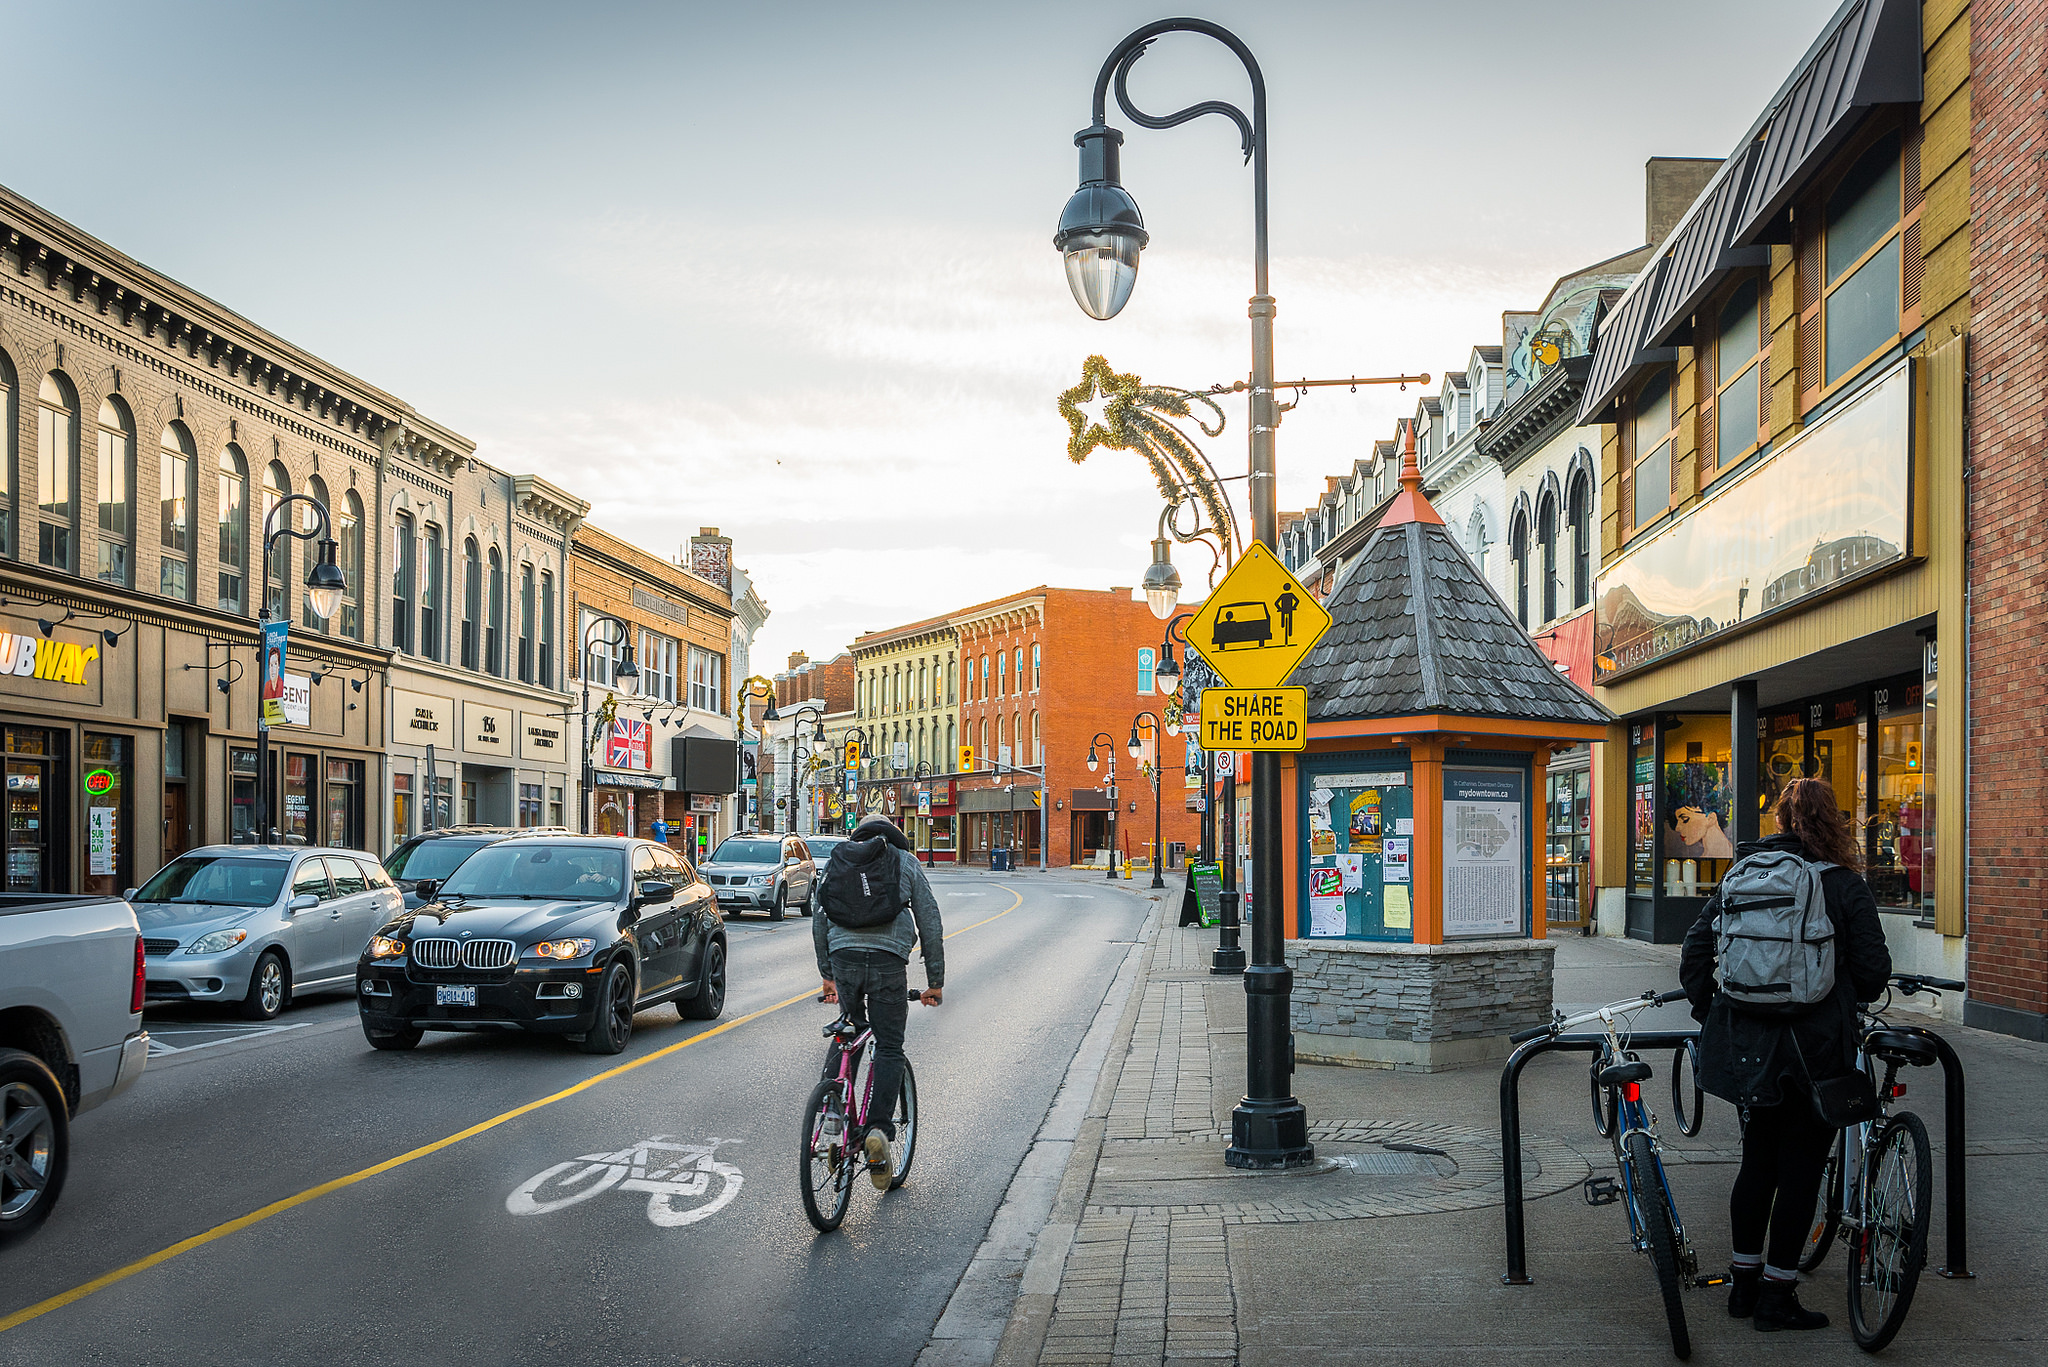 A person cycles through St. Catharines, Ontario. Image: Copyright Queen's Printer for Ontario, photo source: Ontario Growth Secretariat, Ministry of Municipal Affairs.